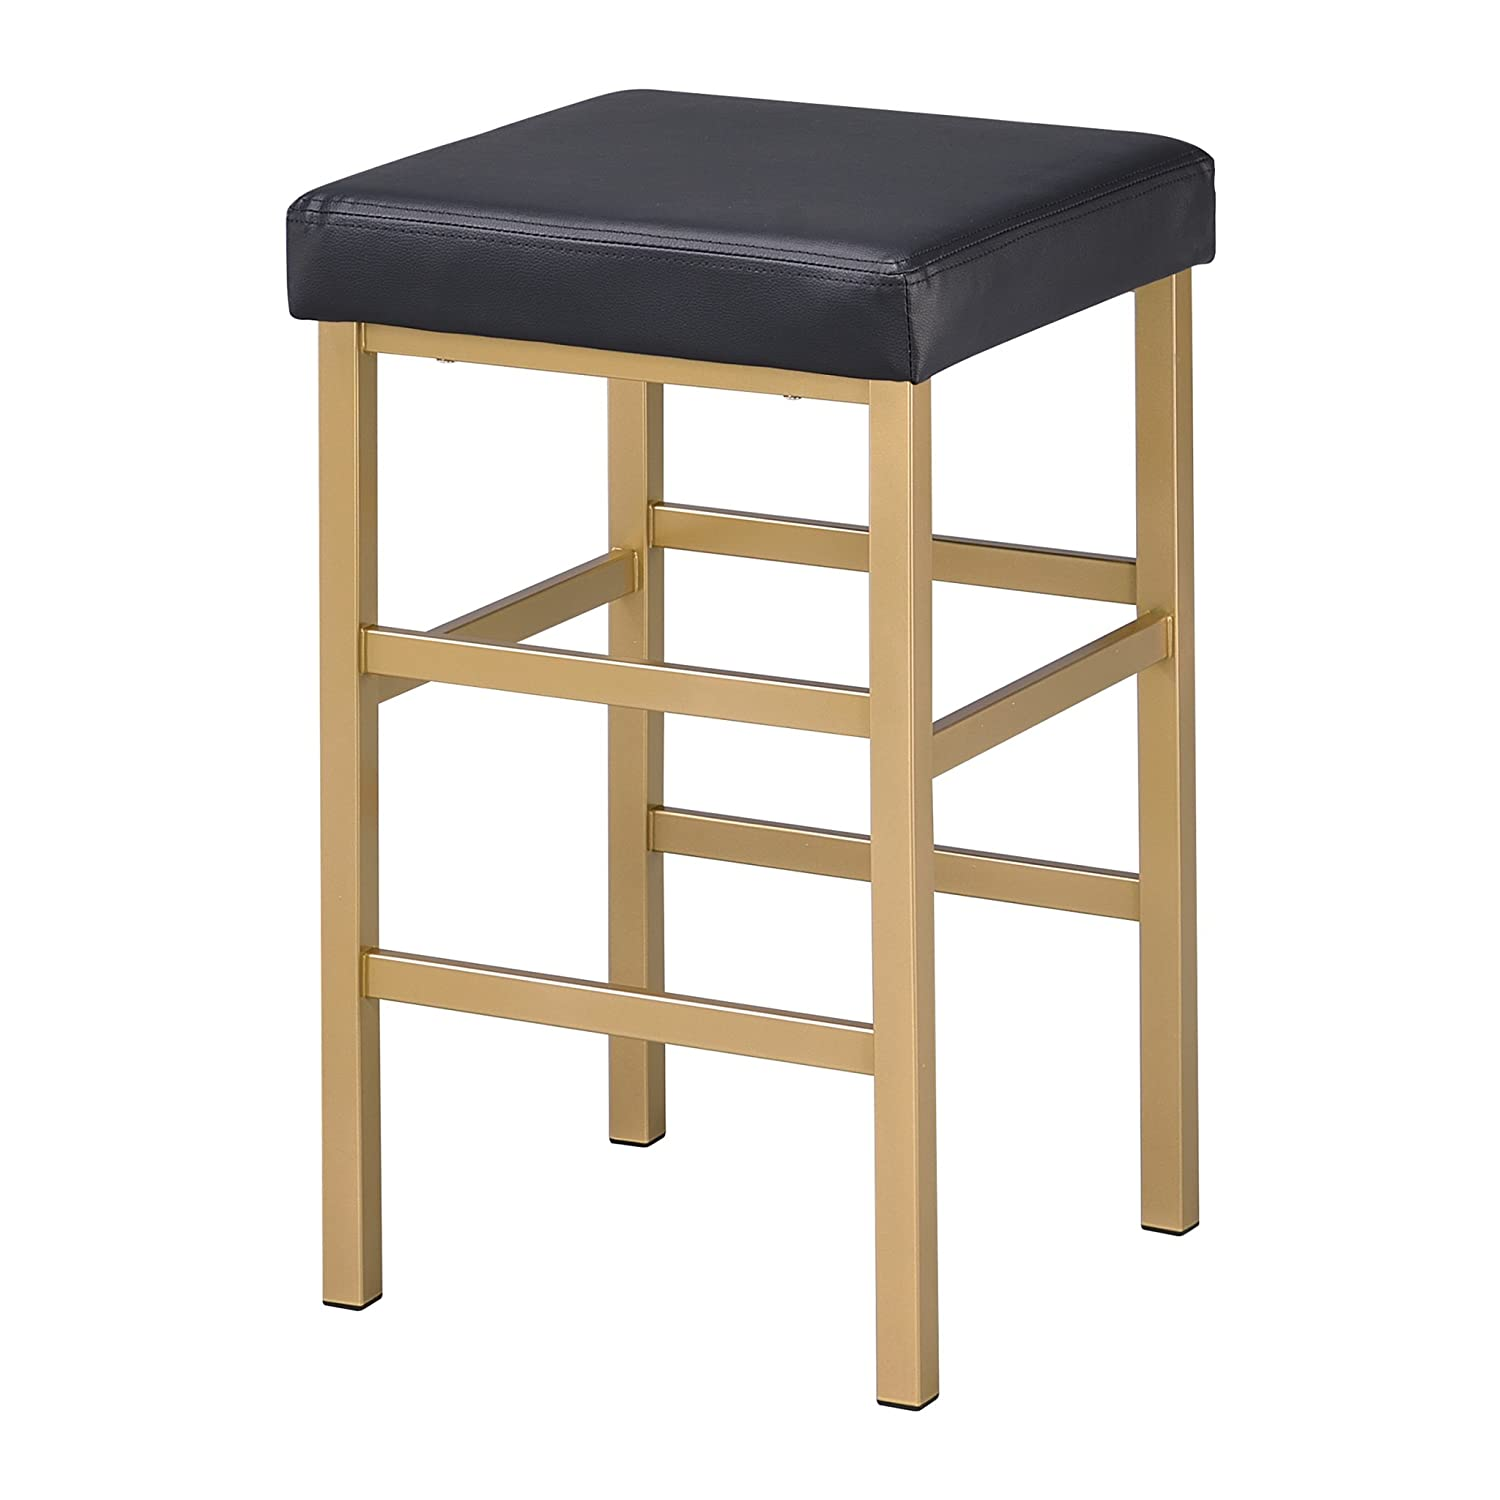 Office Star Backless Stool with Gold Frame, 26-Inch, Black Office Star Products MET1326G-3